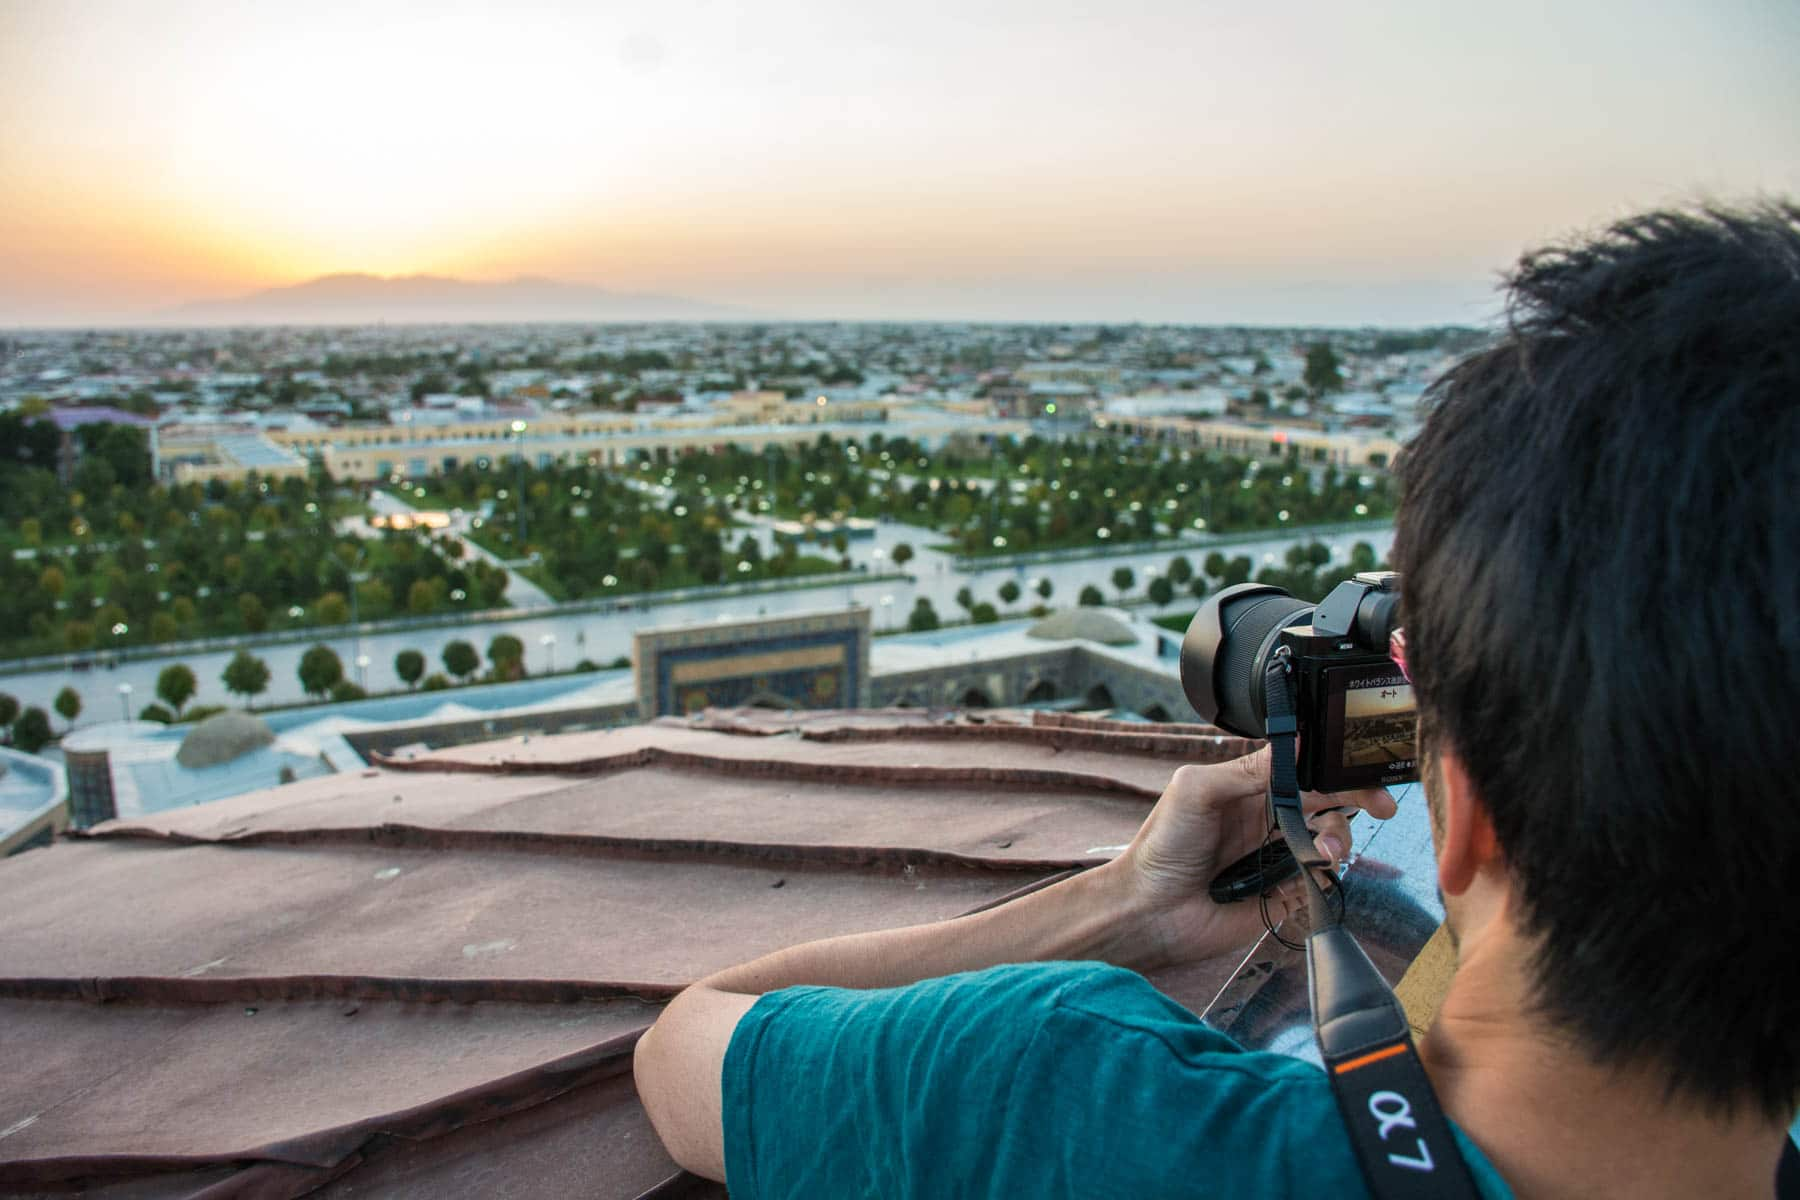 Why you need to see Uzbekistan at sunrise - Watching sunrise from a minaret - Lost WIth Purpose